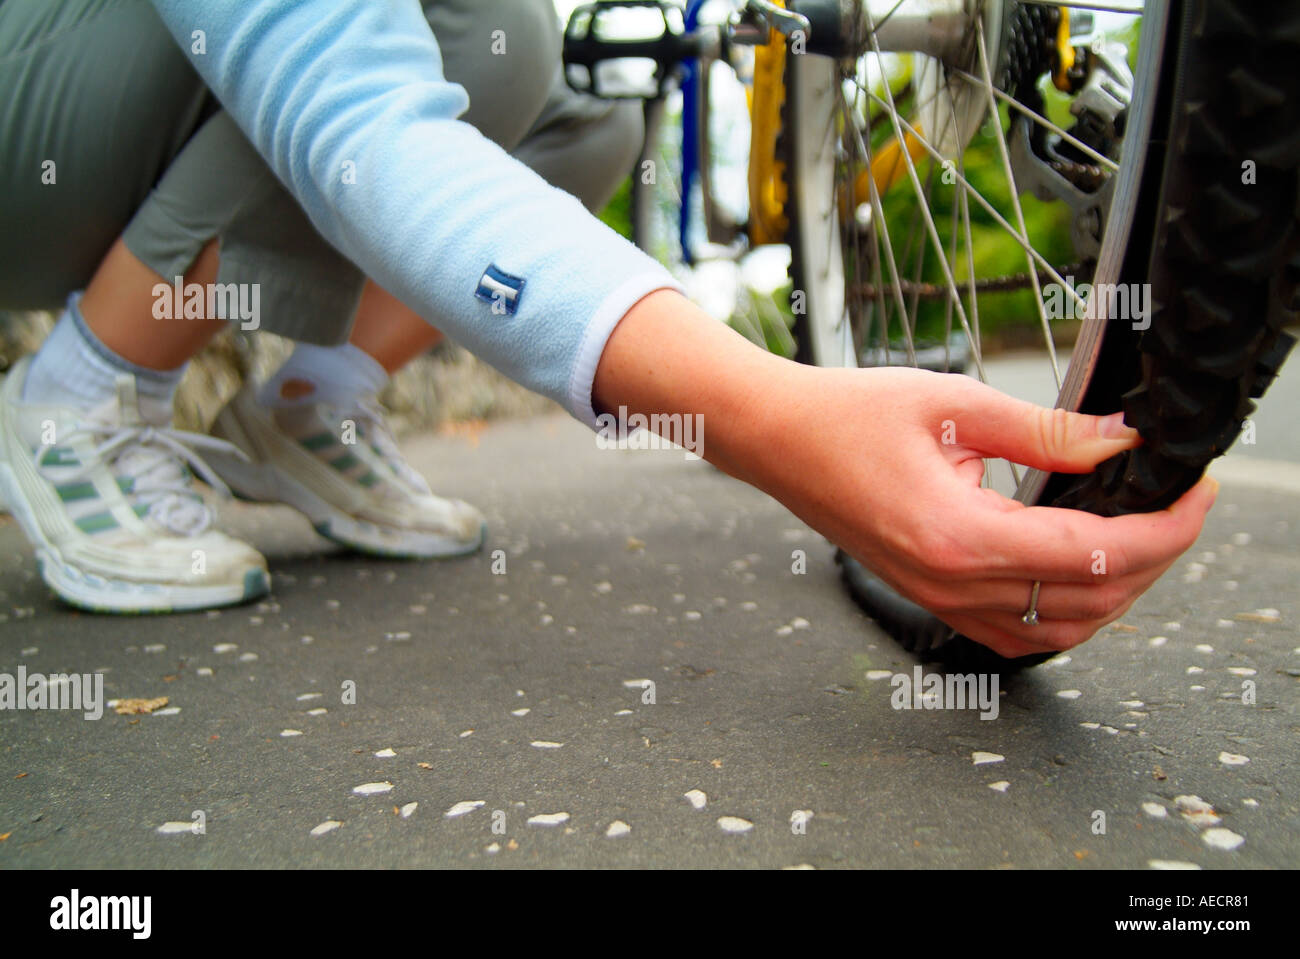 woman checking for a flat tire on her bike Stock Photo